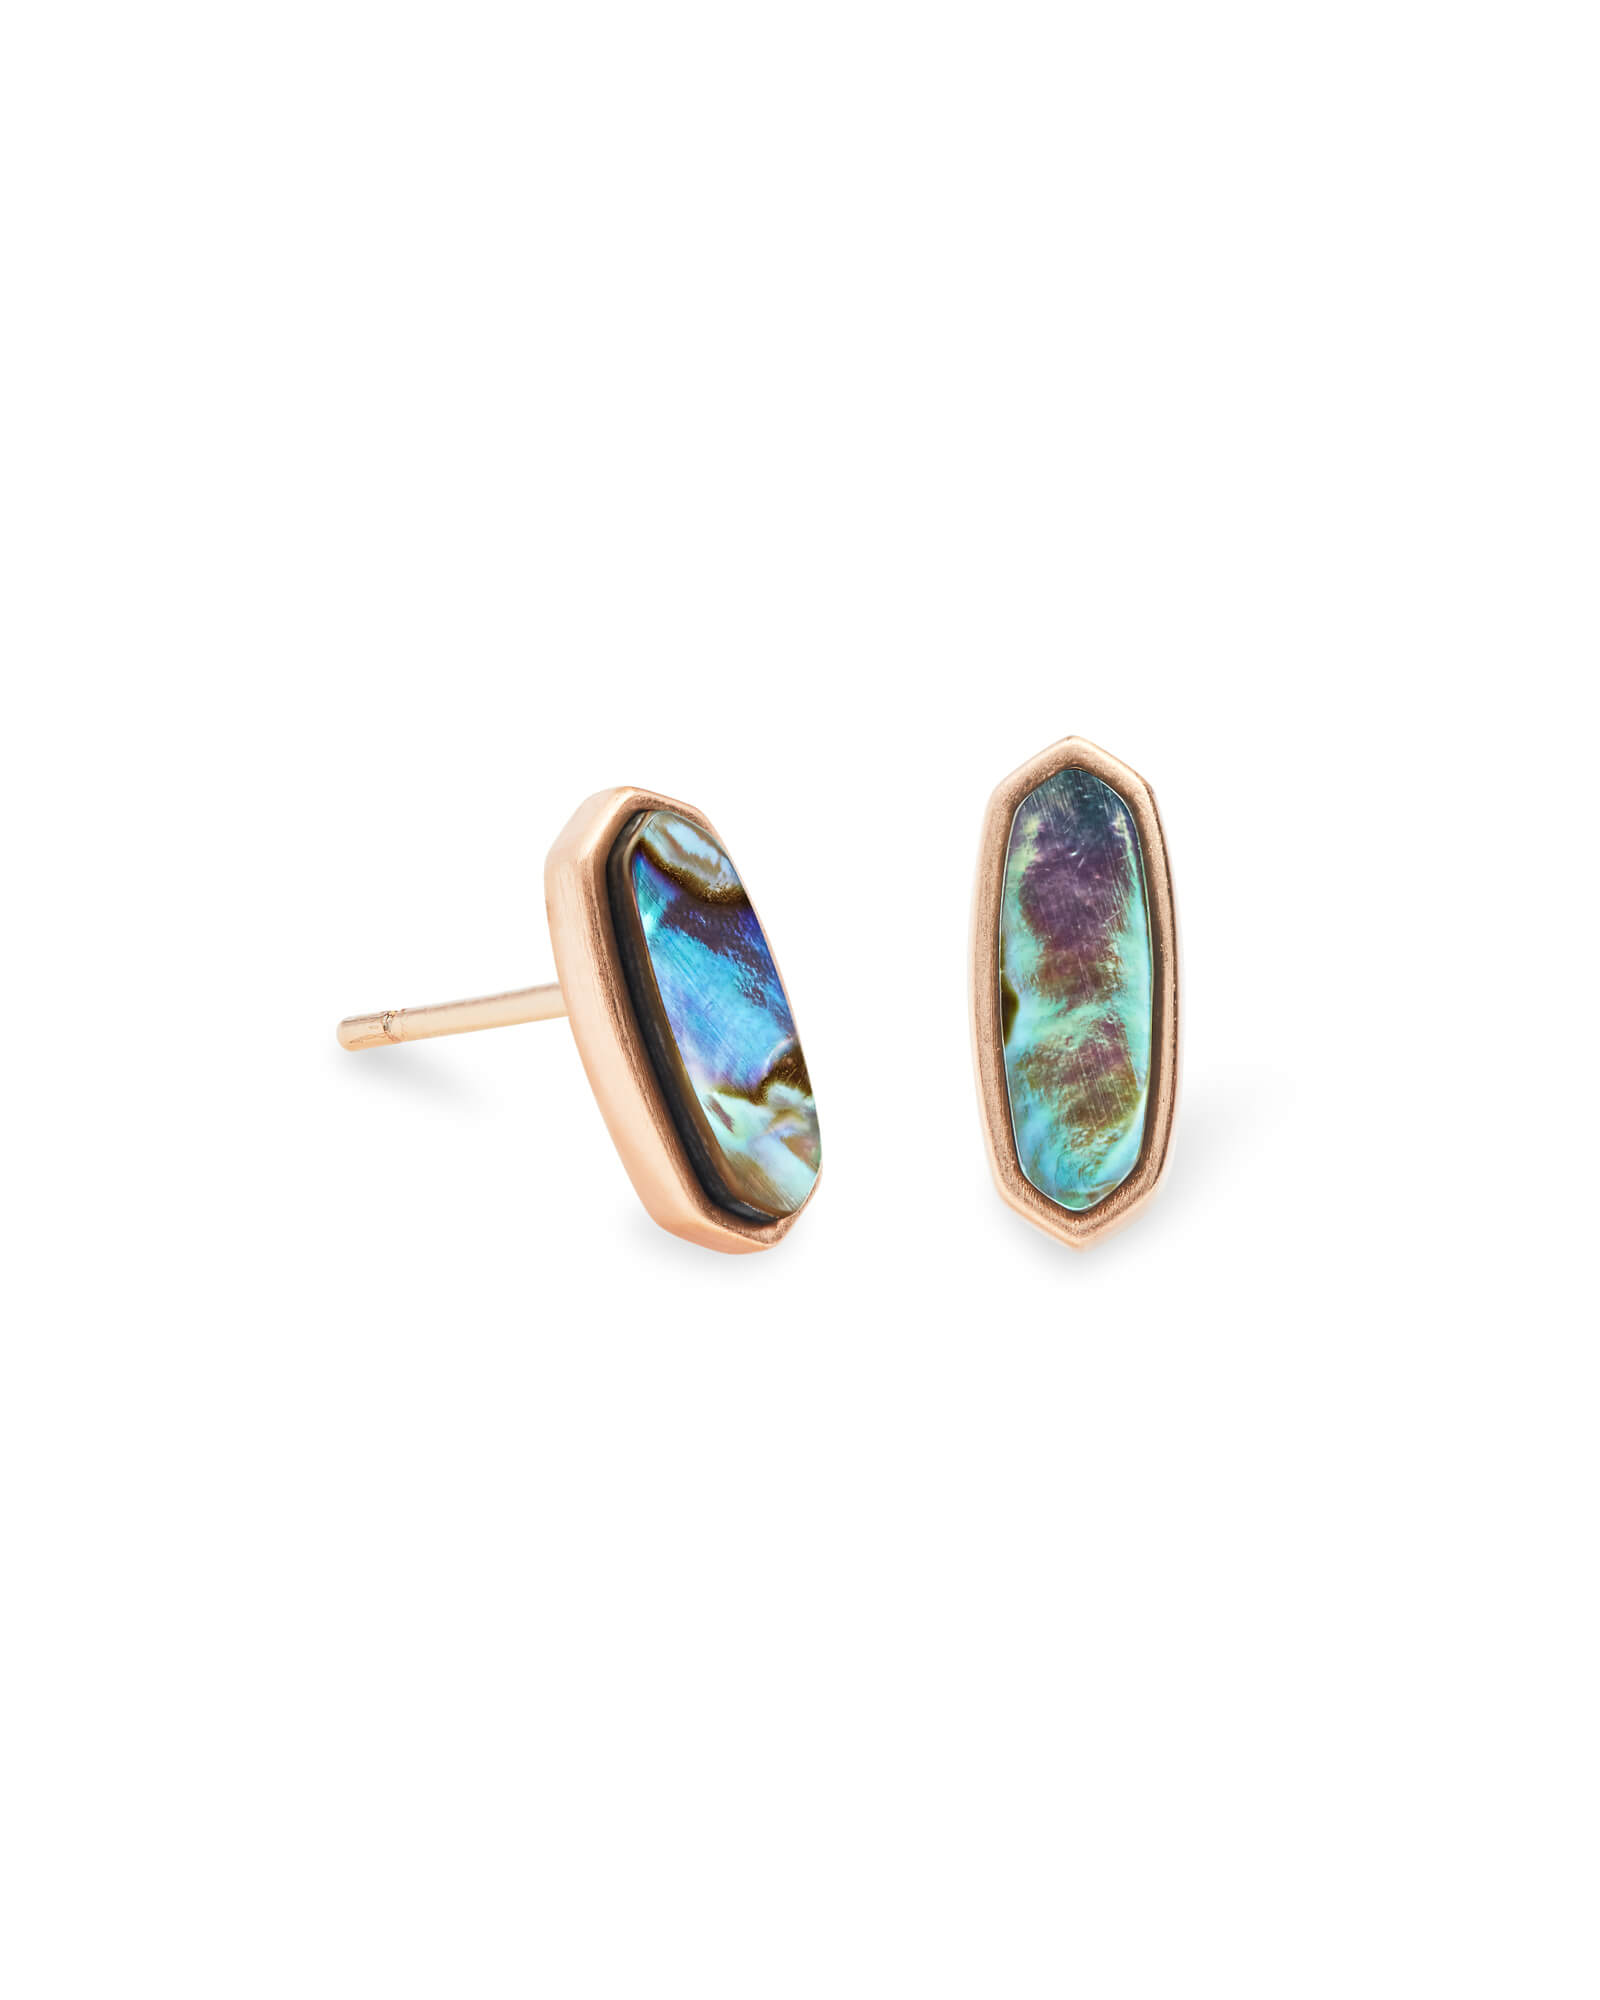 Mae Rose Gold Stud Earrings in Abalone Shell